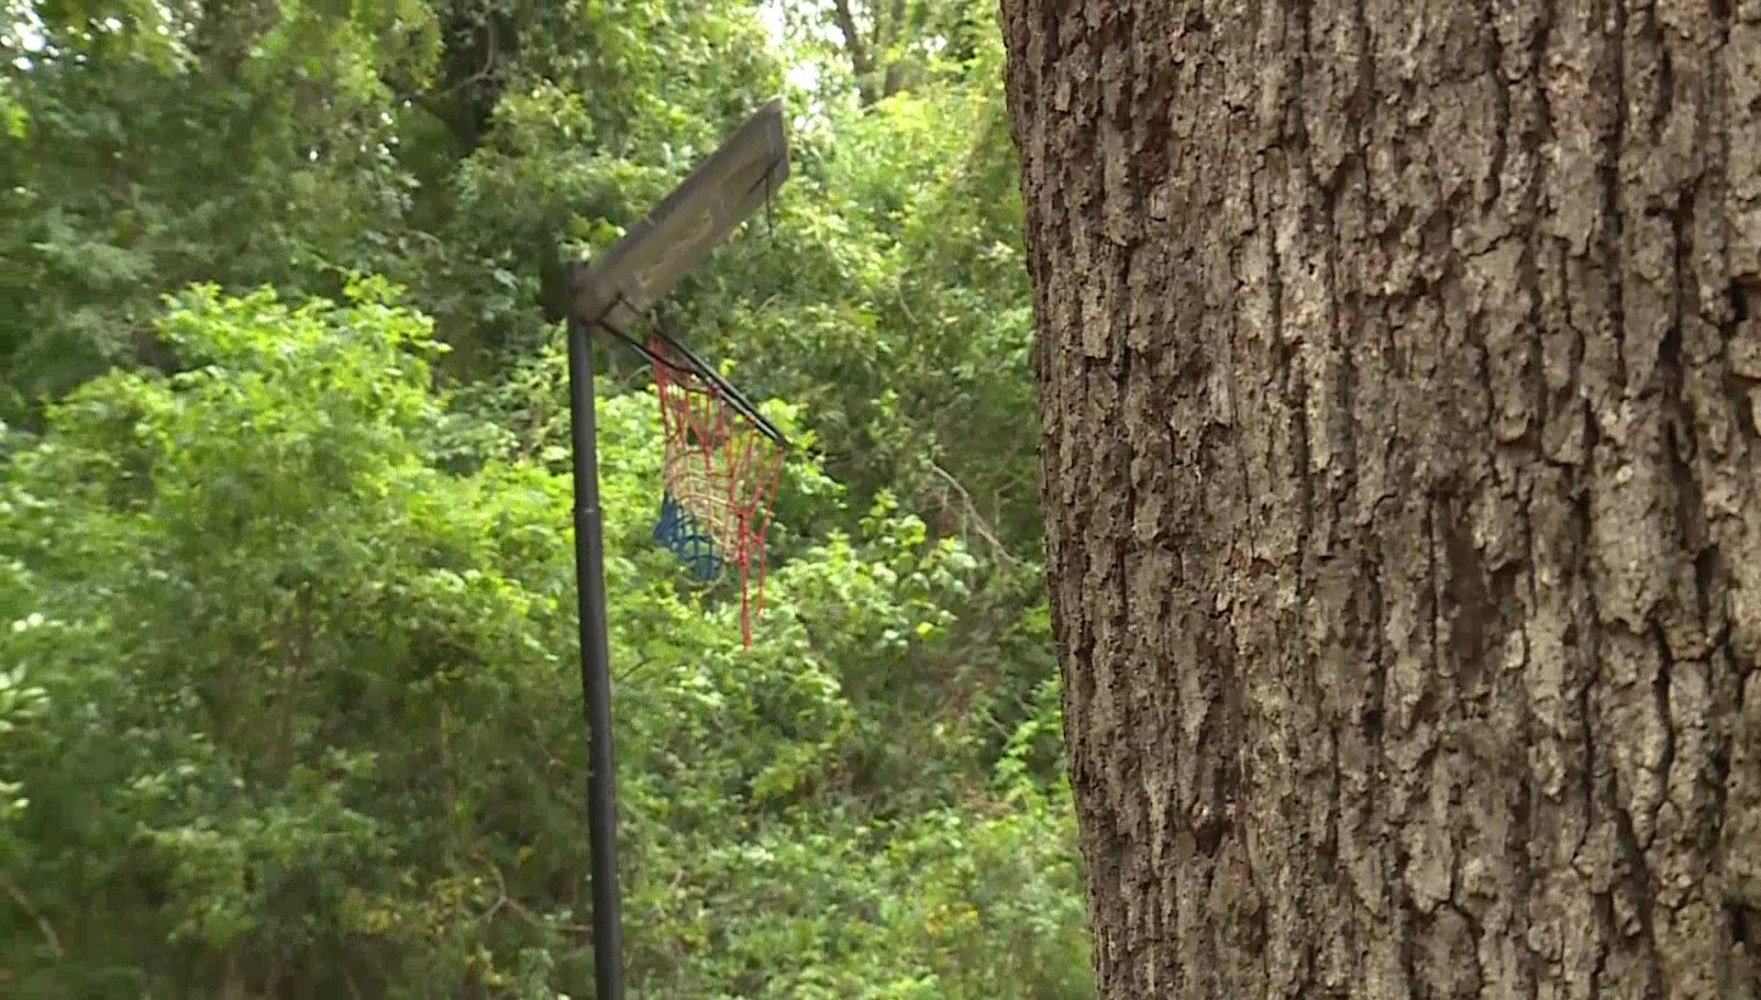 reports of creepy clowns in woods spooking residents of greenville